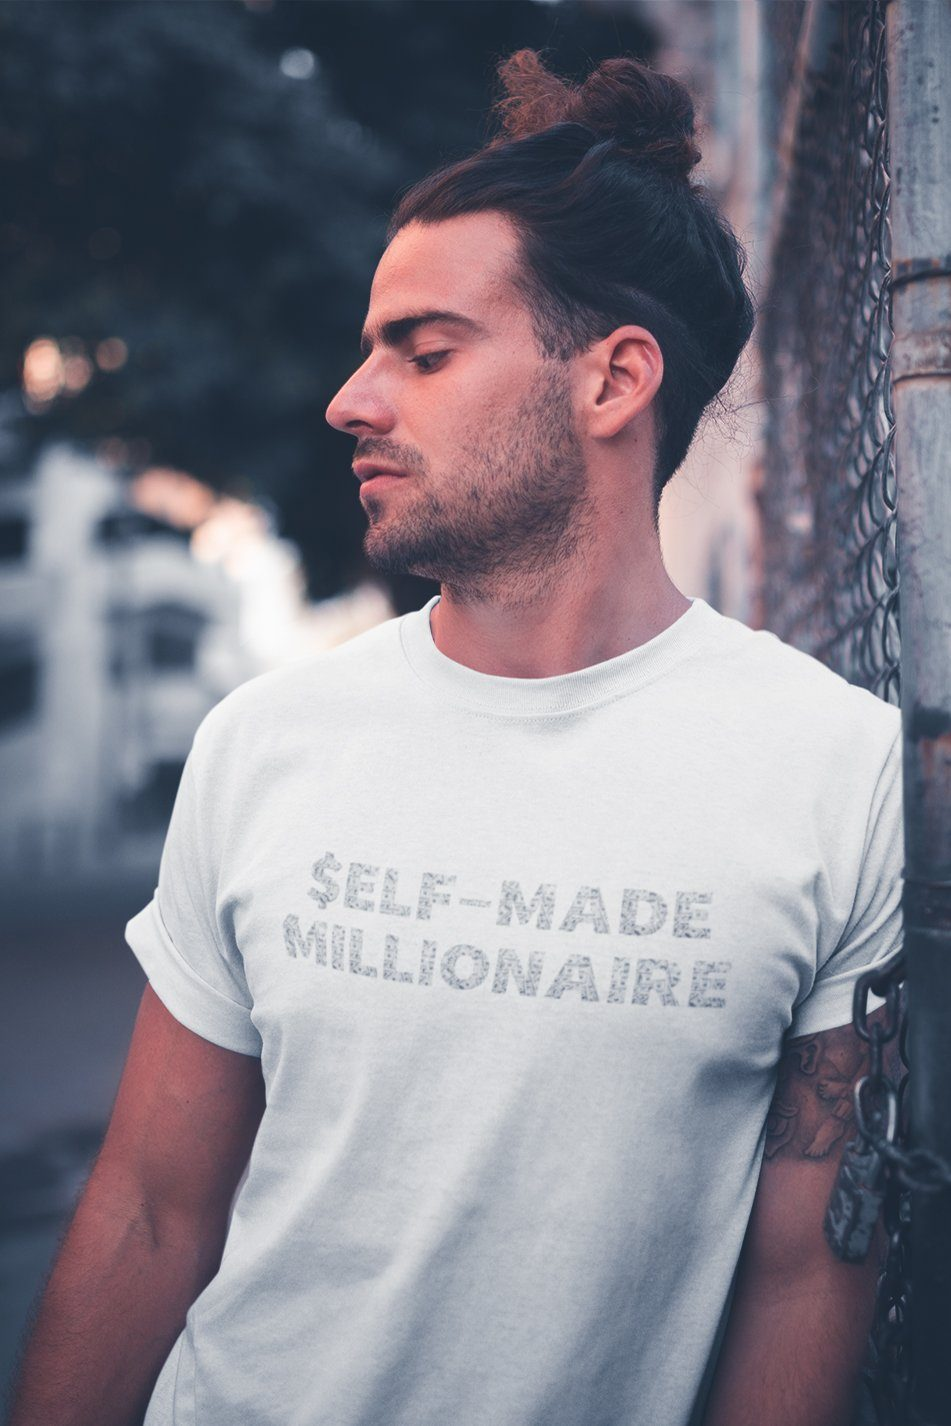 Self-Made Millionaire TeeT-shirtEntrepreneurKing.coWhiteS motivational quotes entrepreneur inspirational quotes